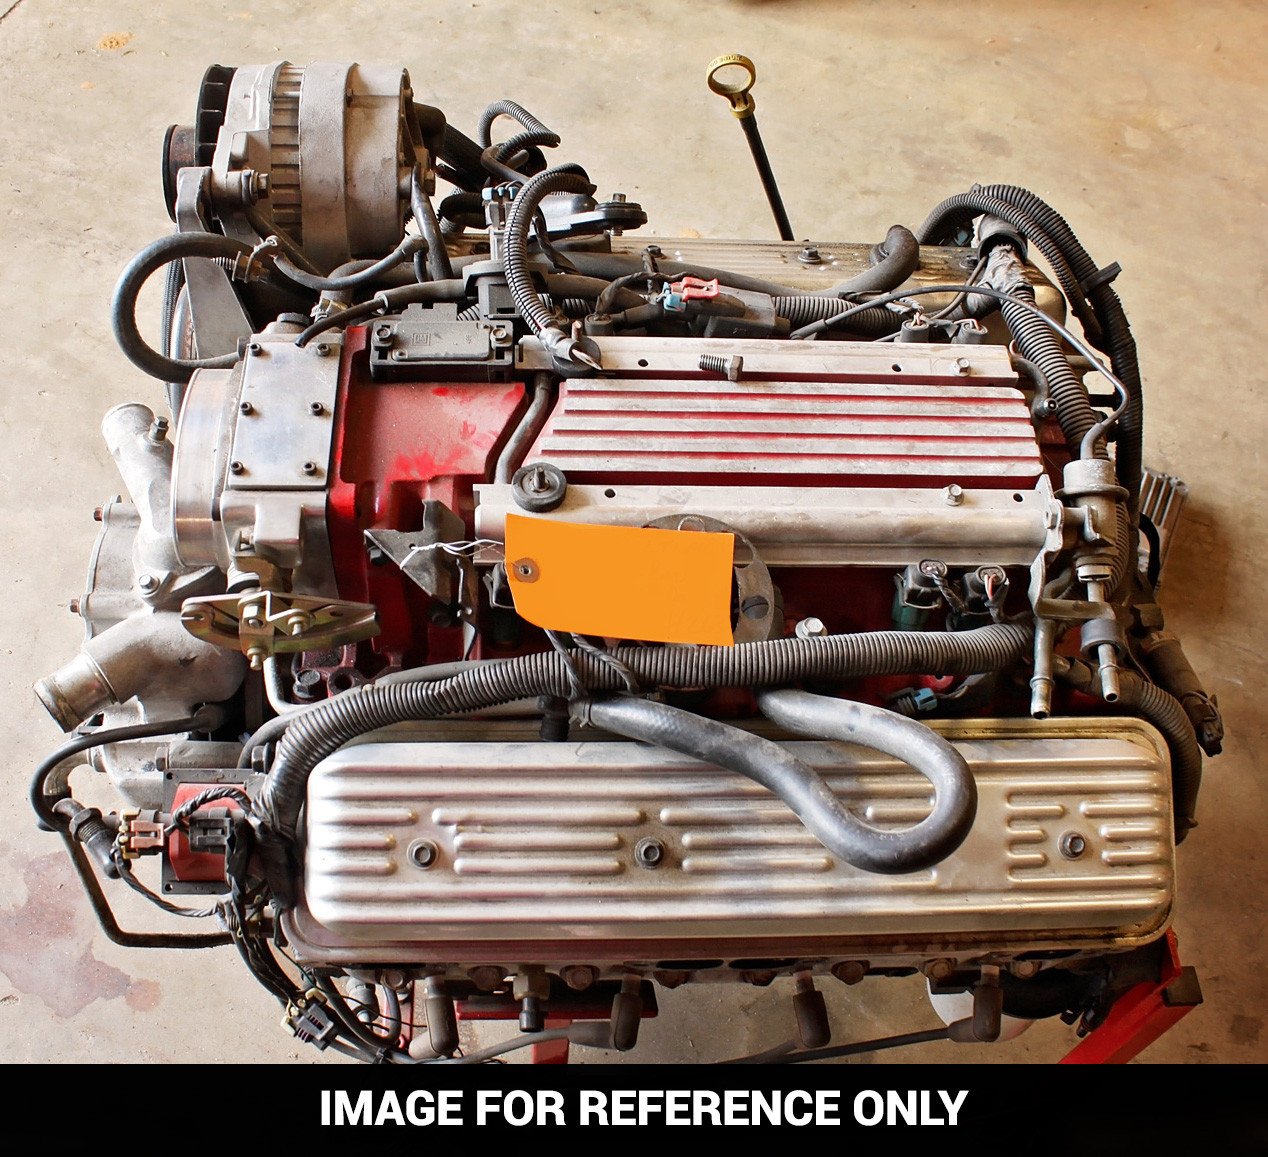 Chevy 350 Lt1 Engine 96 97: Manual For A 350 Tpi Chevy Motor